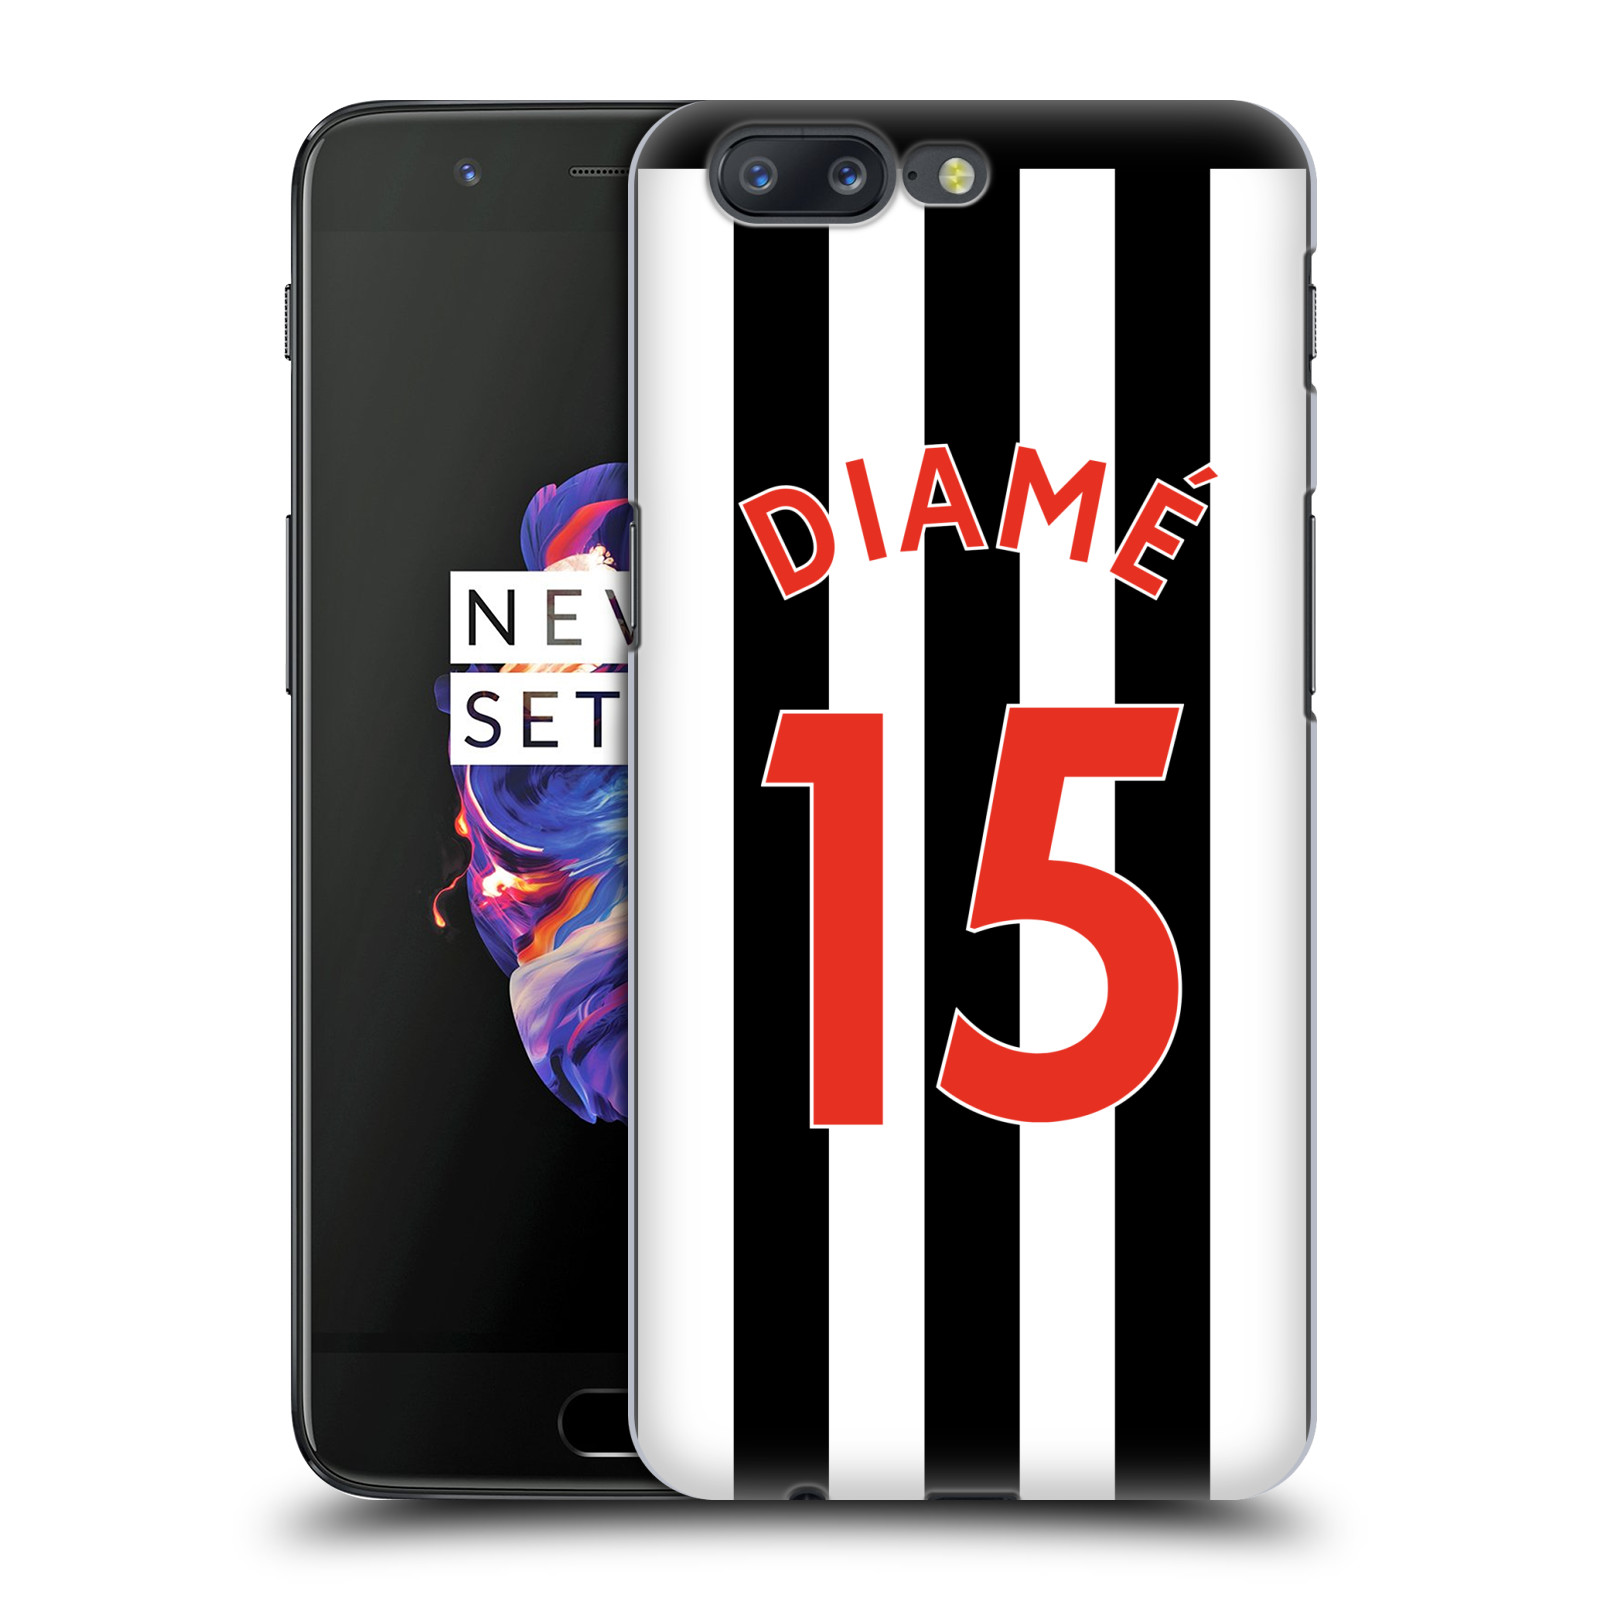 Newcastle-United-FC-NUFC-2017-18-Home-Kit-2-Back-Case-for-OnePlus-Asus-Amazon